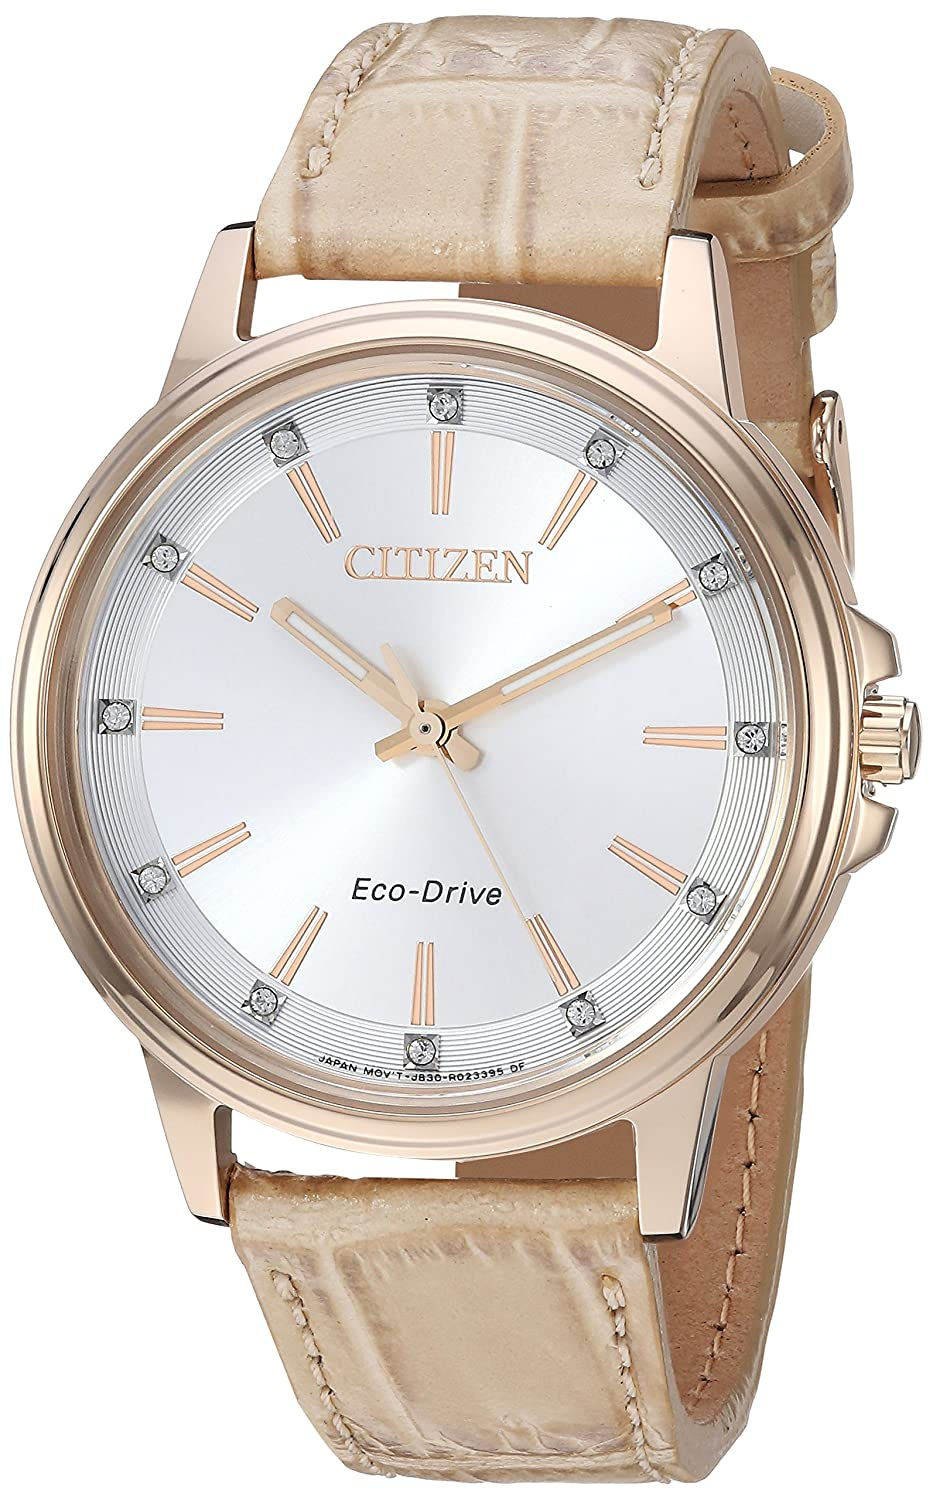 Citizen Women s Eco-Drive Quartz Stainless Steel and Leather Casual Watch, Color Beige Model FE7033-08A